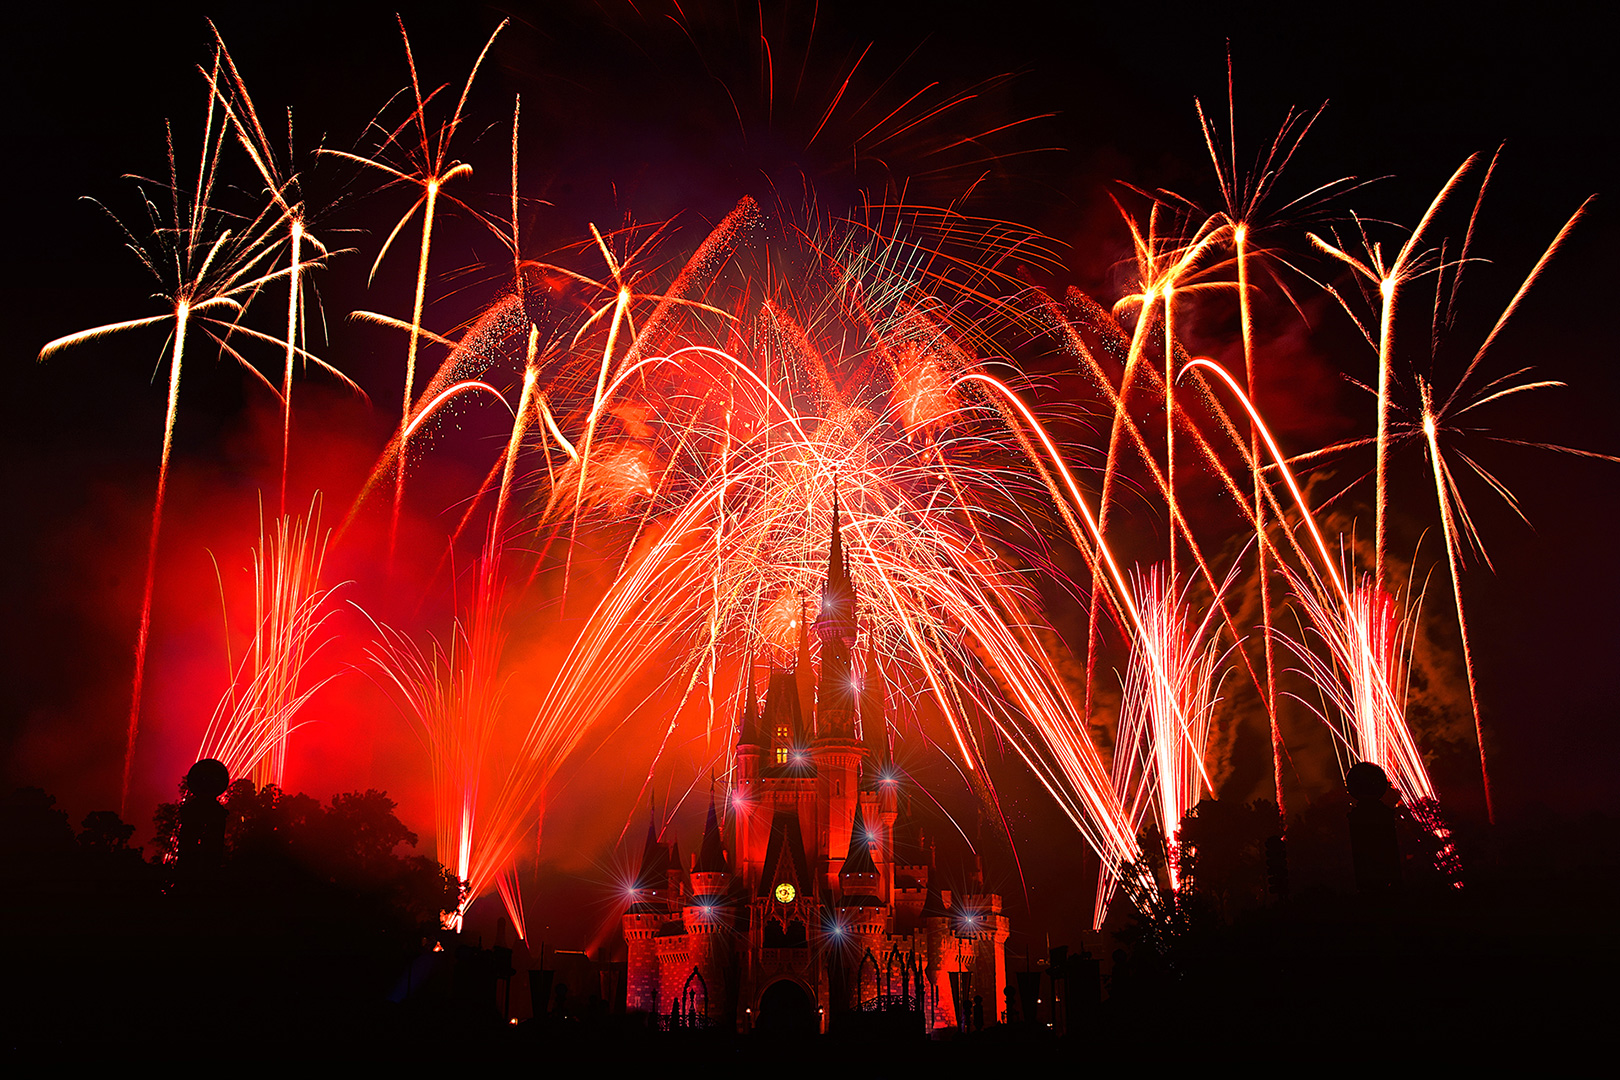 Disney Photography, Disney World Photography, Disneyland Photography, Disney Photos, Disney Pictures, Walt Disney World, The Magic Kingdom, Walt Disney, Mickey Mouse, Orlando, Florida, Theme Park, Fireworks, Christmas Wishes, Show